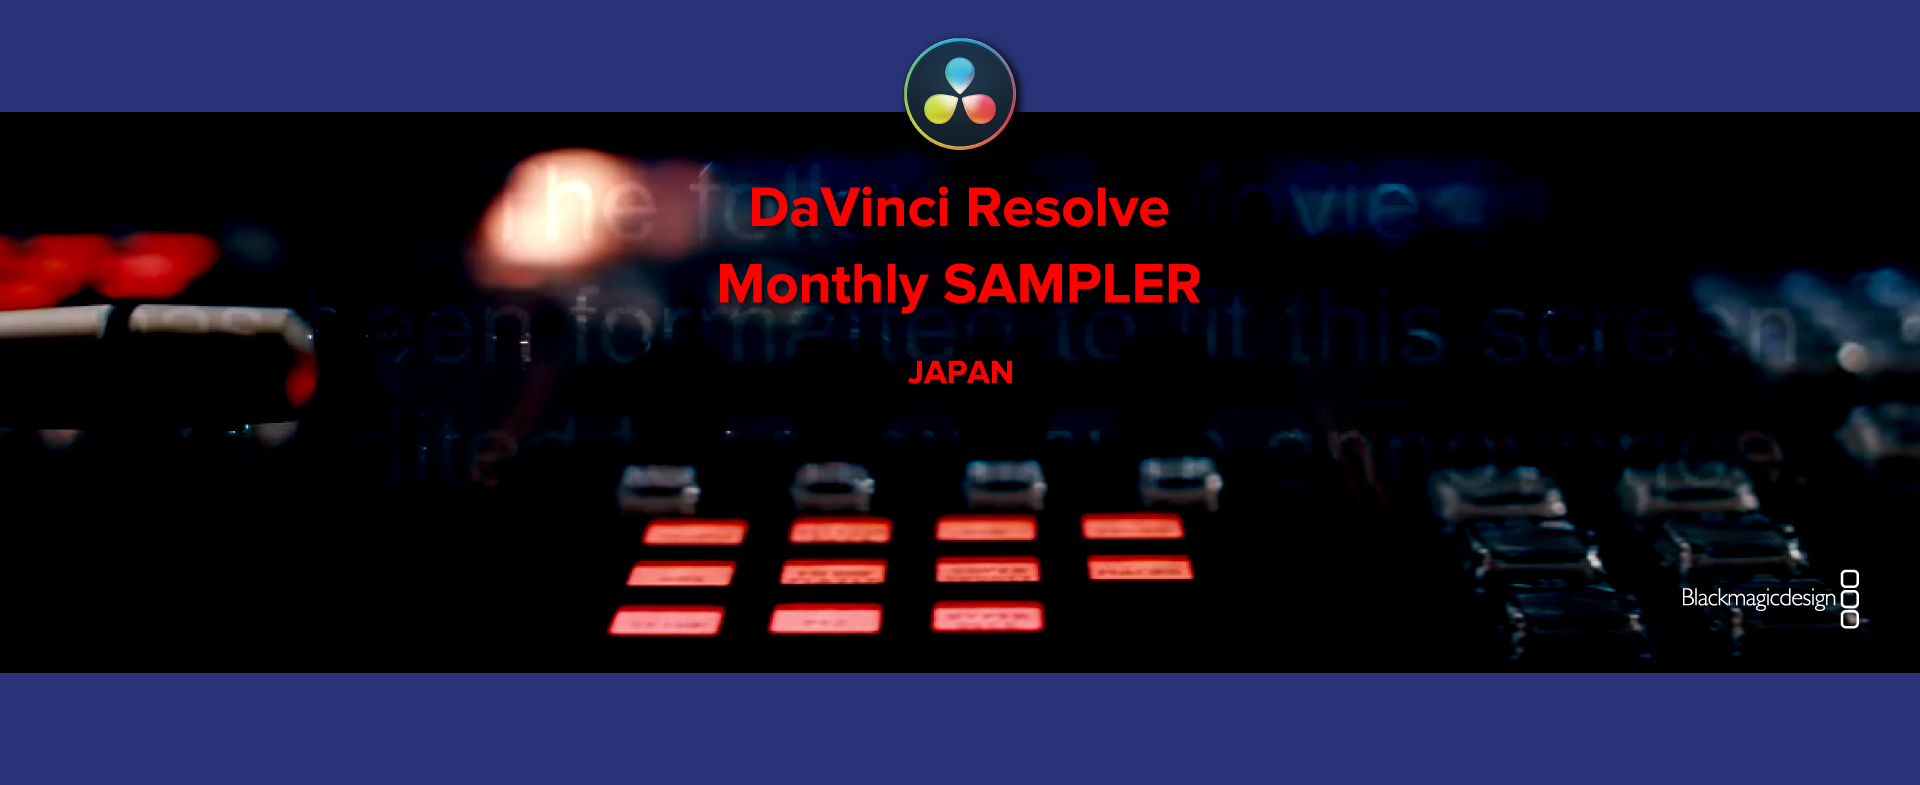 DaVinci Resolve Monthly SAMPLER Vol.6